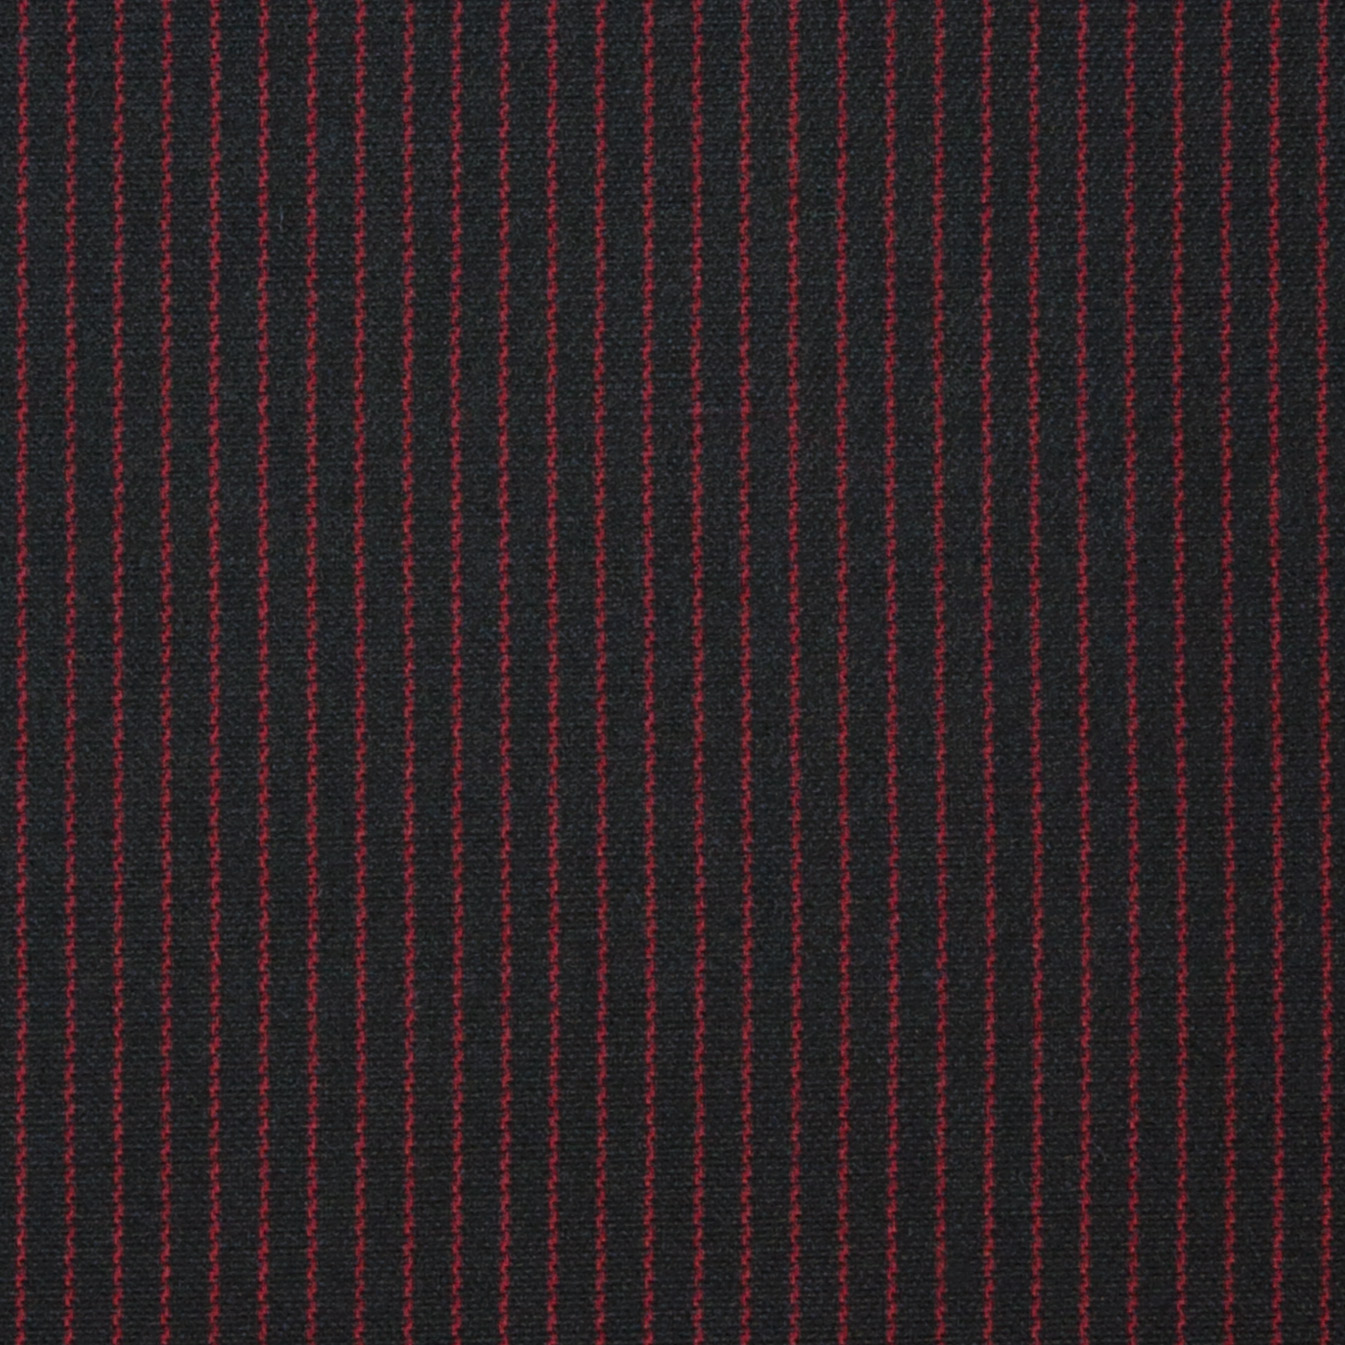 Buy tailor made shirts online - Arturo Collection - Black with Fine Red Stripe